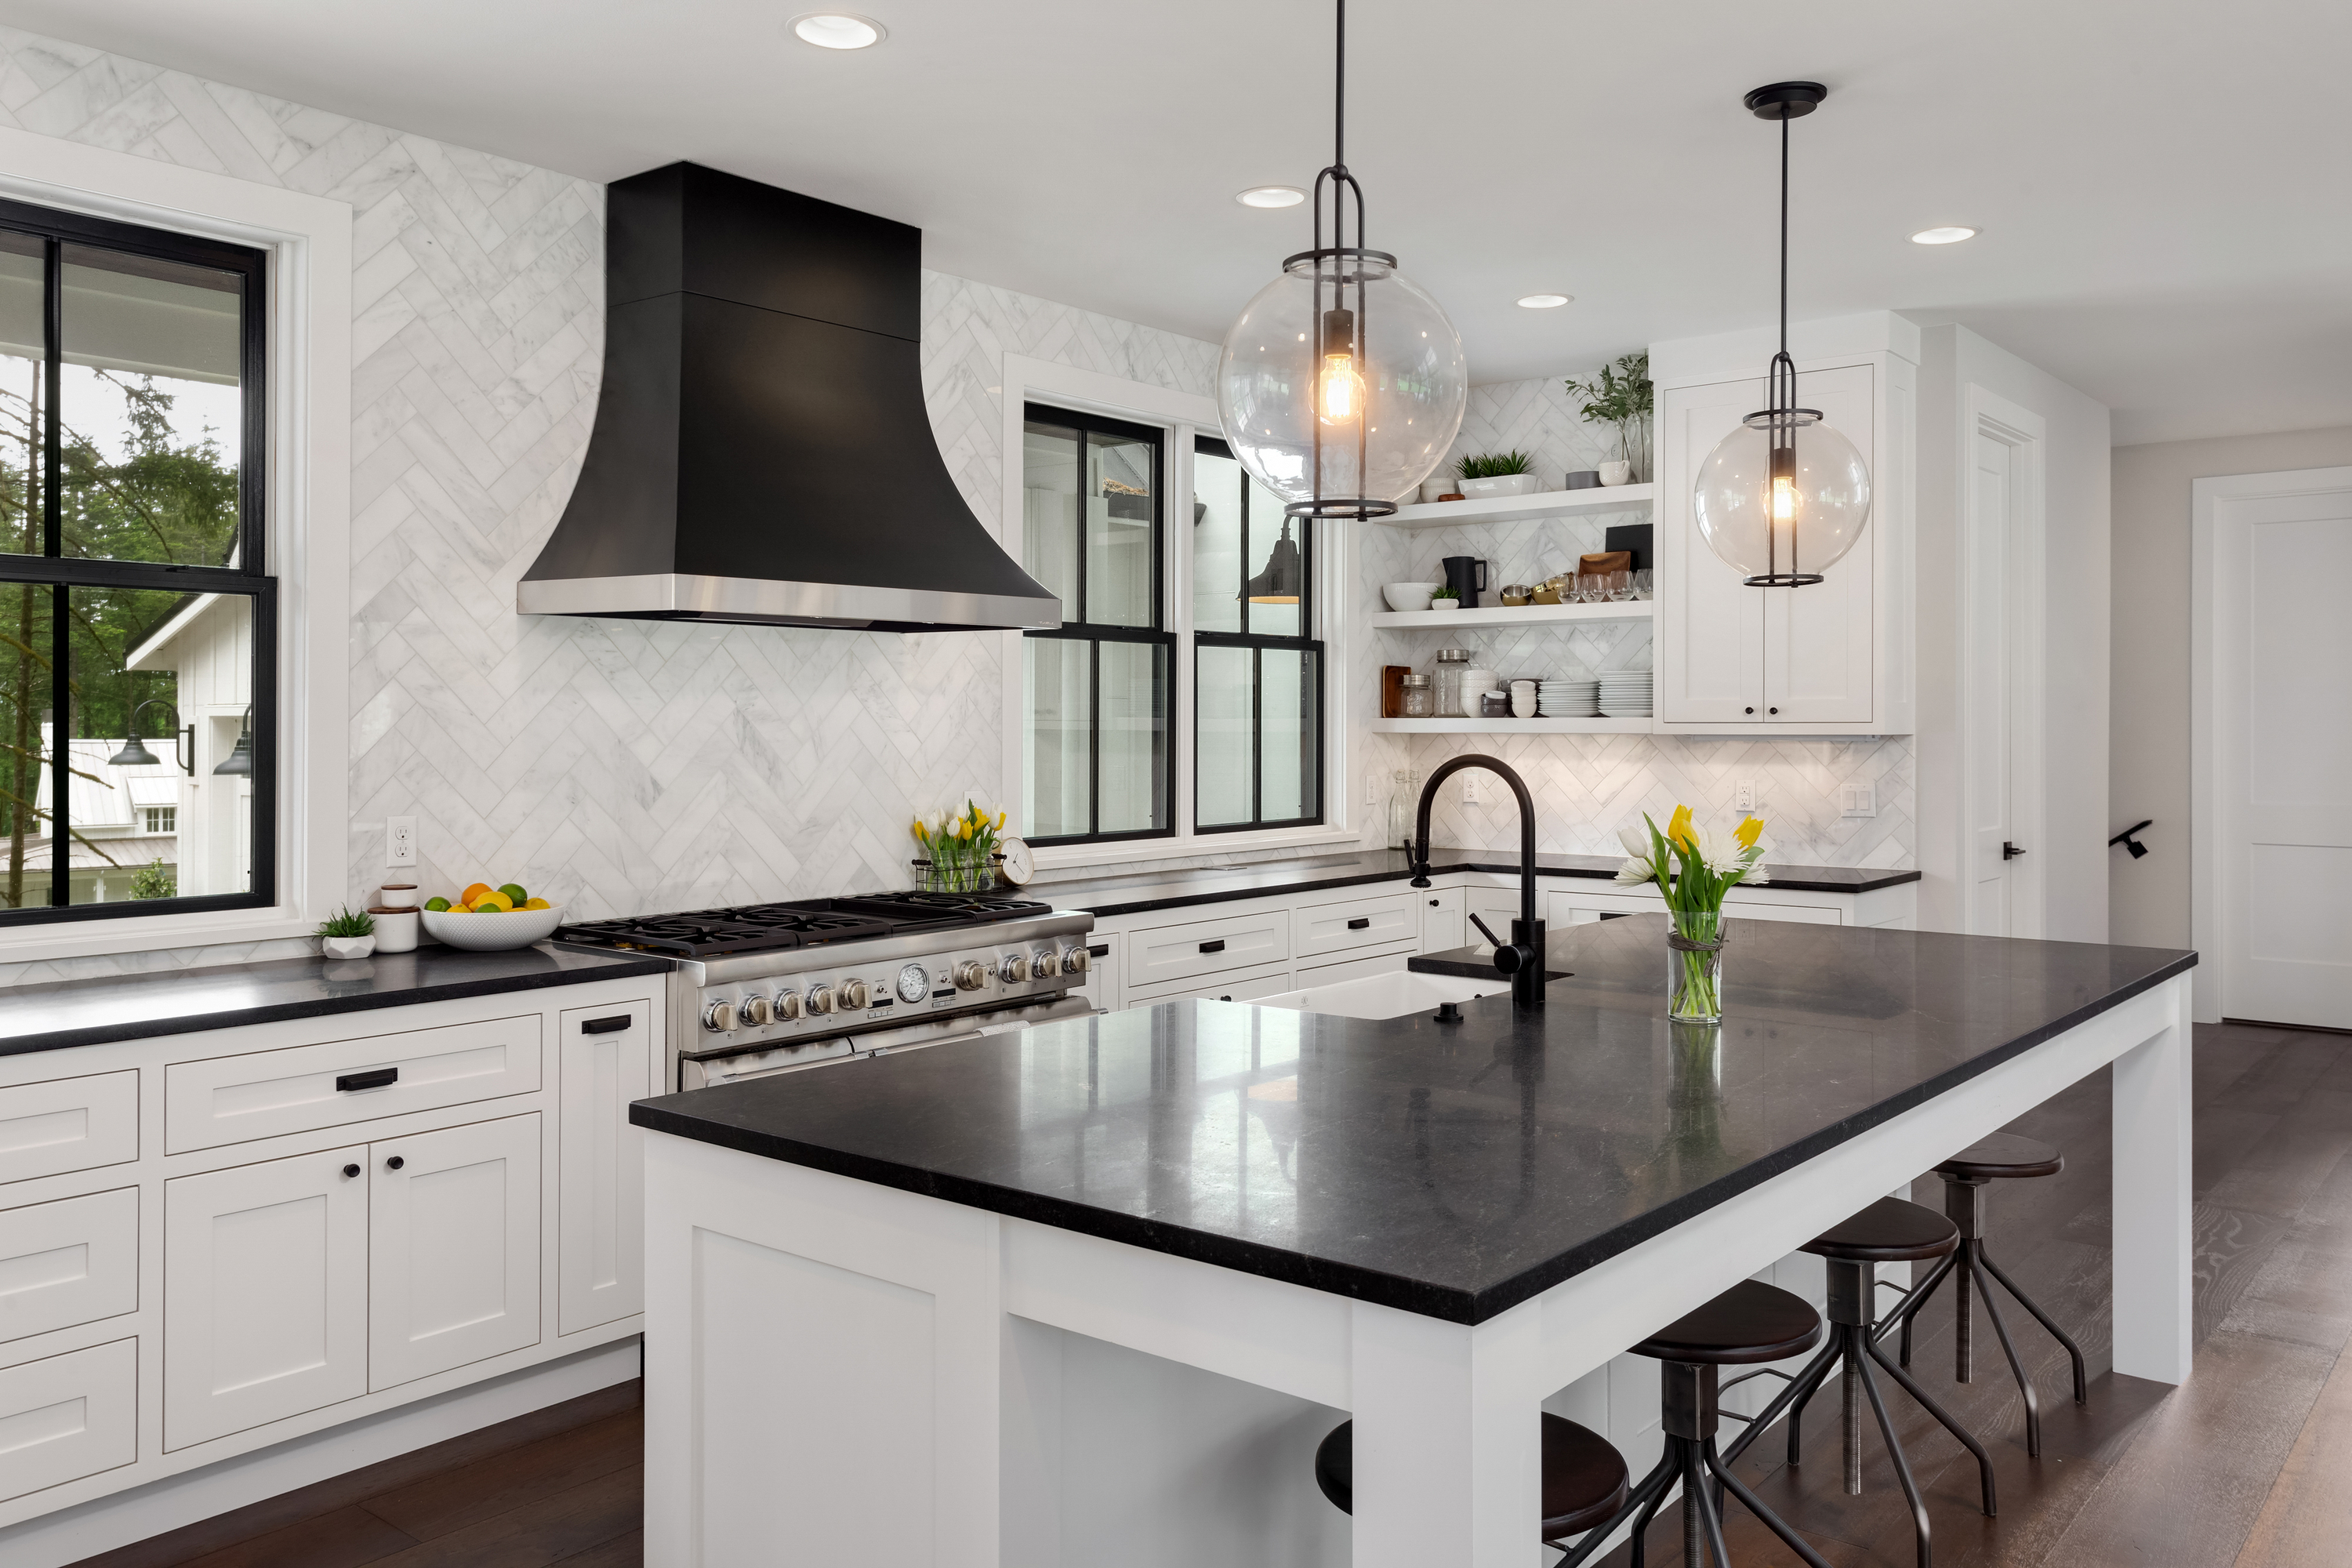 Isn't this kitchen gorgeous! The contrasting look of white cabinets black granite really just pops. If you're for more black and white kitchen ideas, look here.